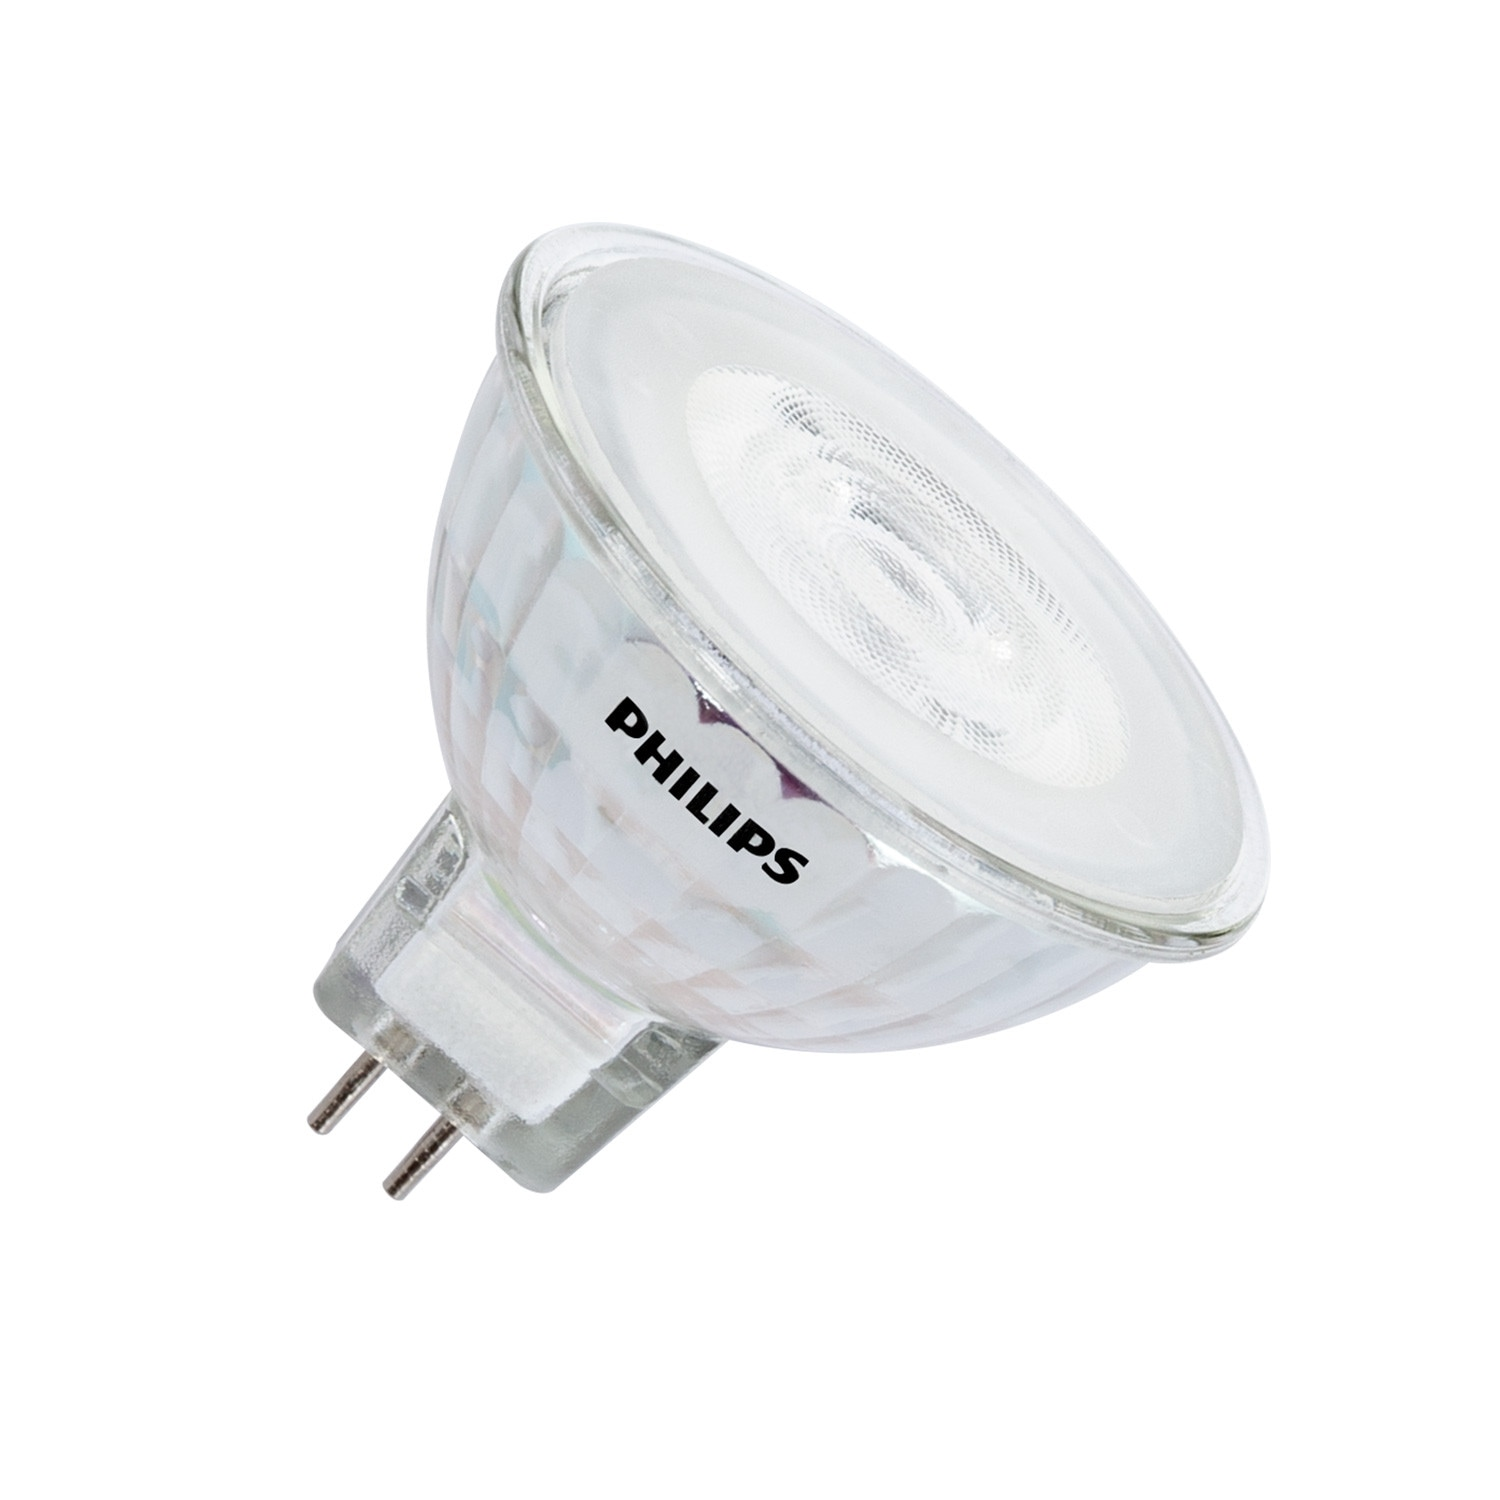 Lampara Led 12v Led Lampe Gu5 3 Mr16 Philips 12v Spotvle 7w 36º